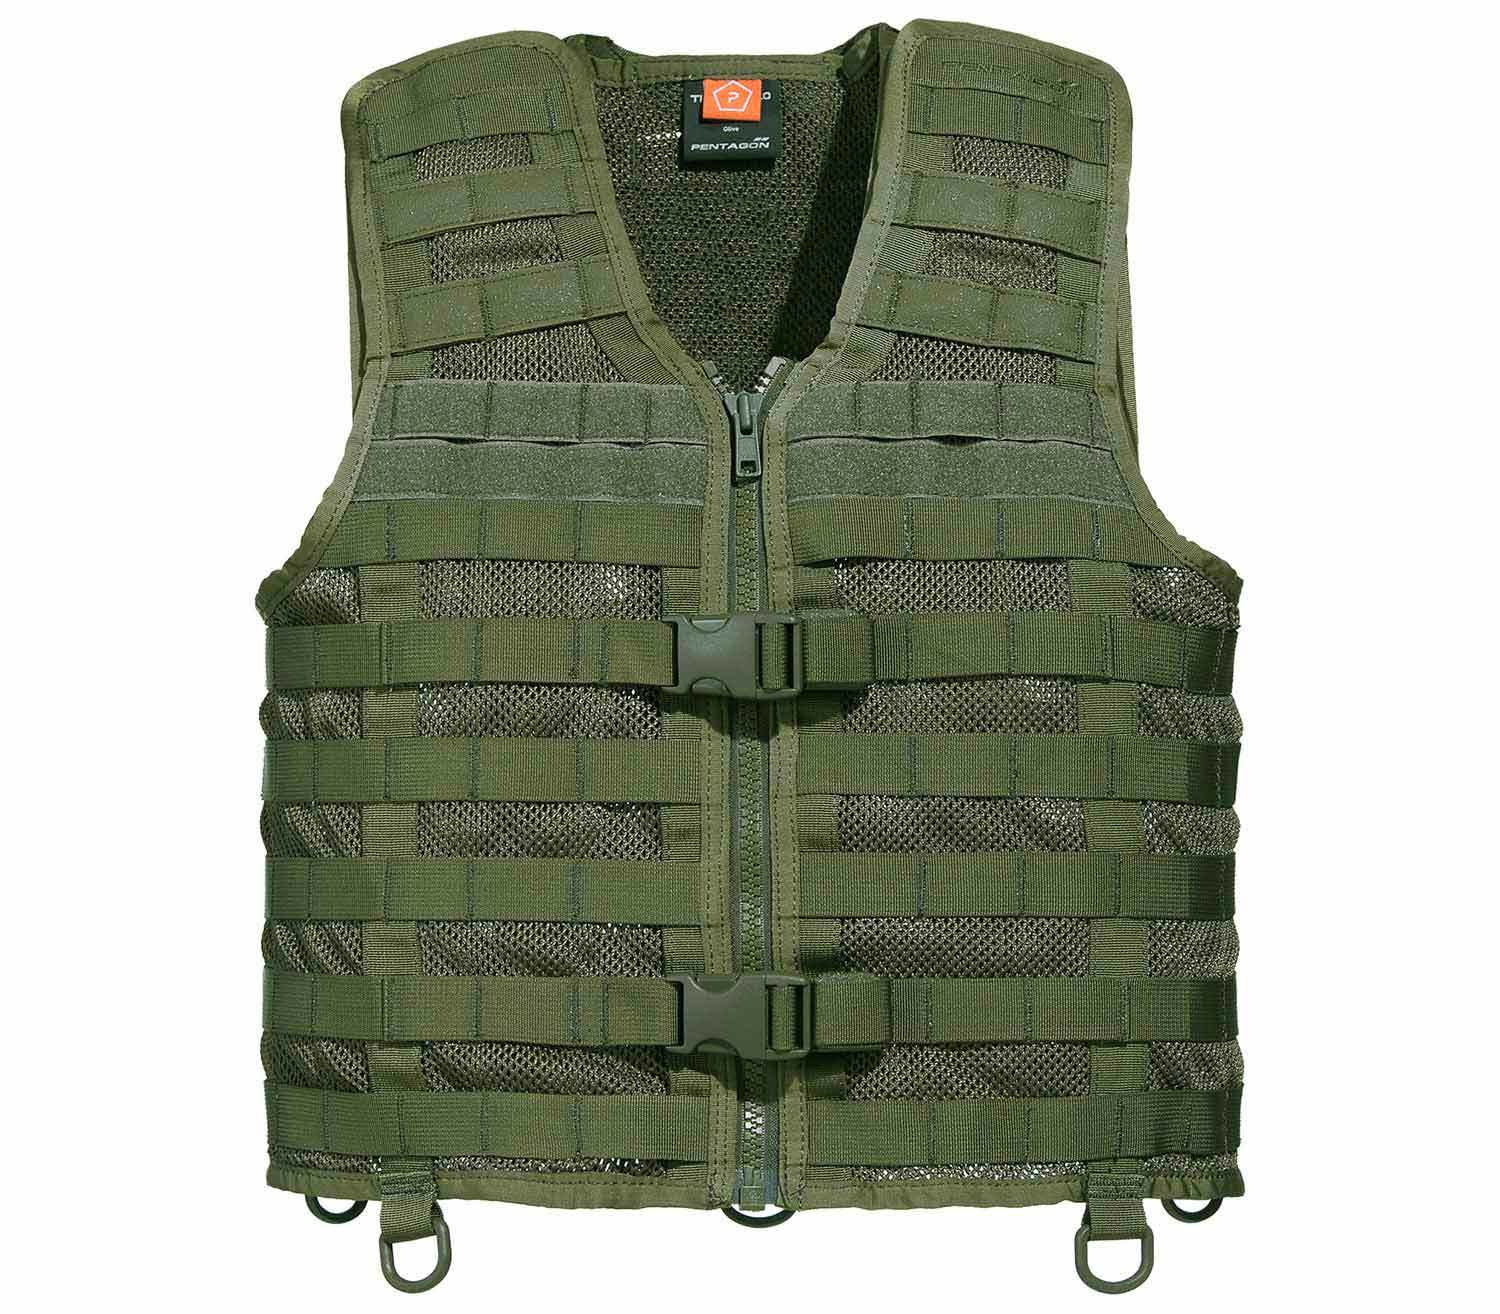 Chaleco Tactico Pentagon Thorax MOLLE Oliva frontal